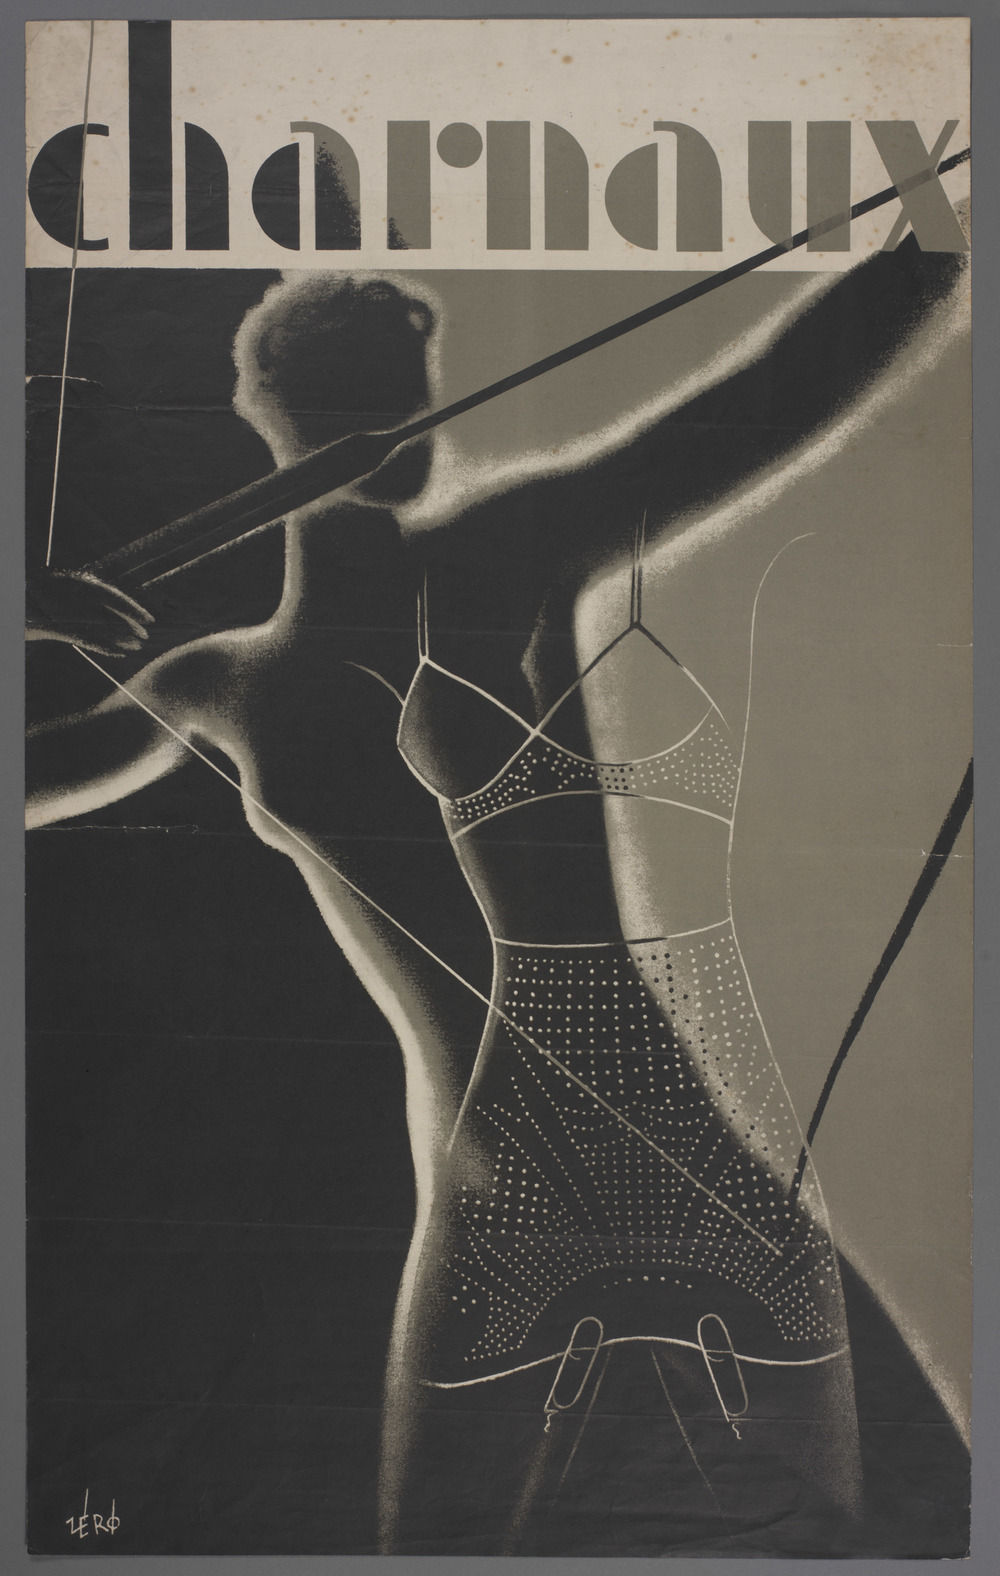 Advertising poster designed by Hans Schleger for the Charnaux Patent Corset Co. Ltd Date: c. 1936 Courtesy of the Hans Schleger Estate